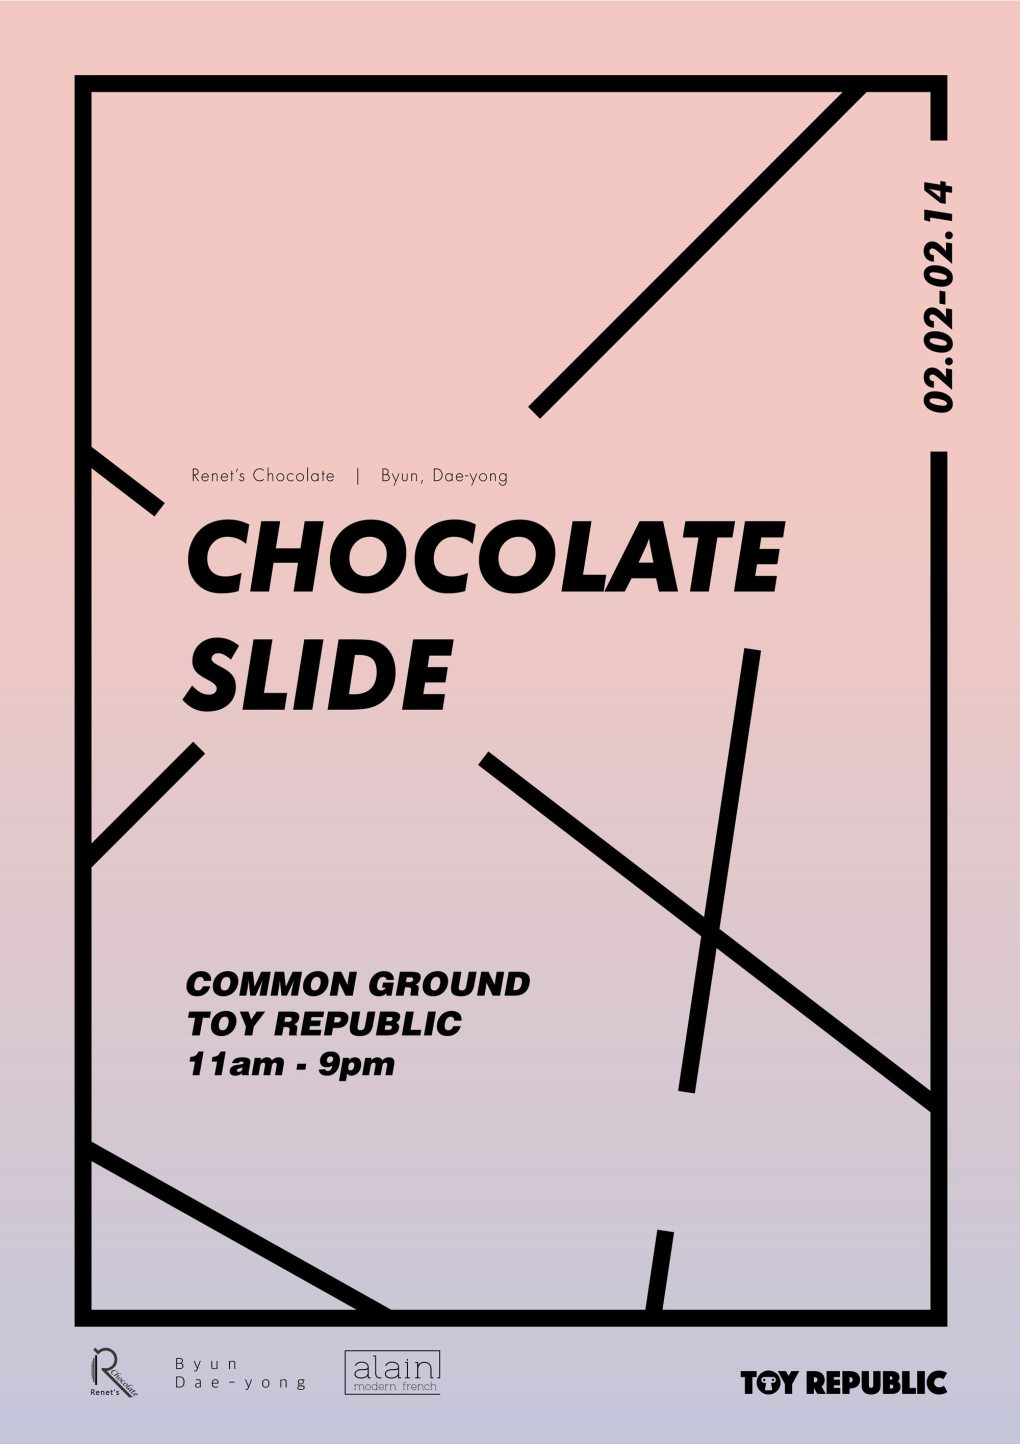 20160127_chocolate-slide_POSTER